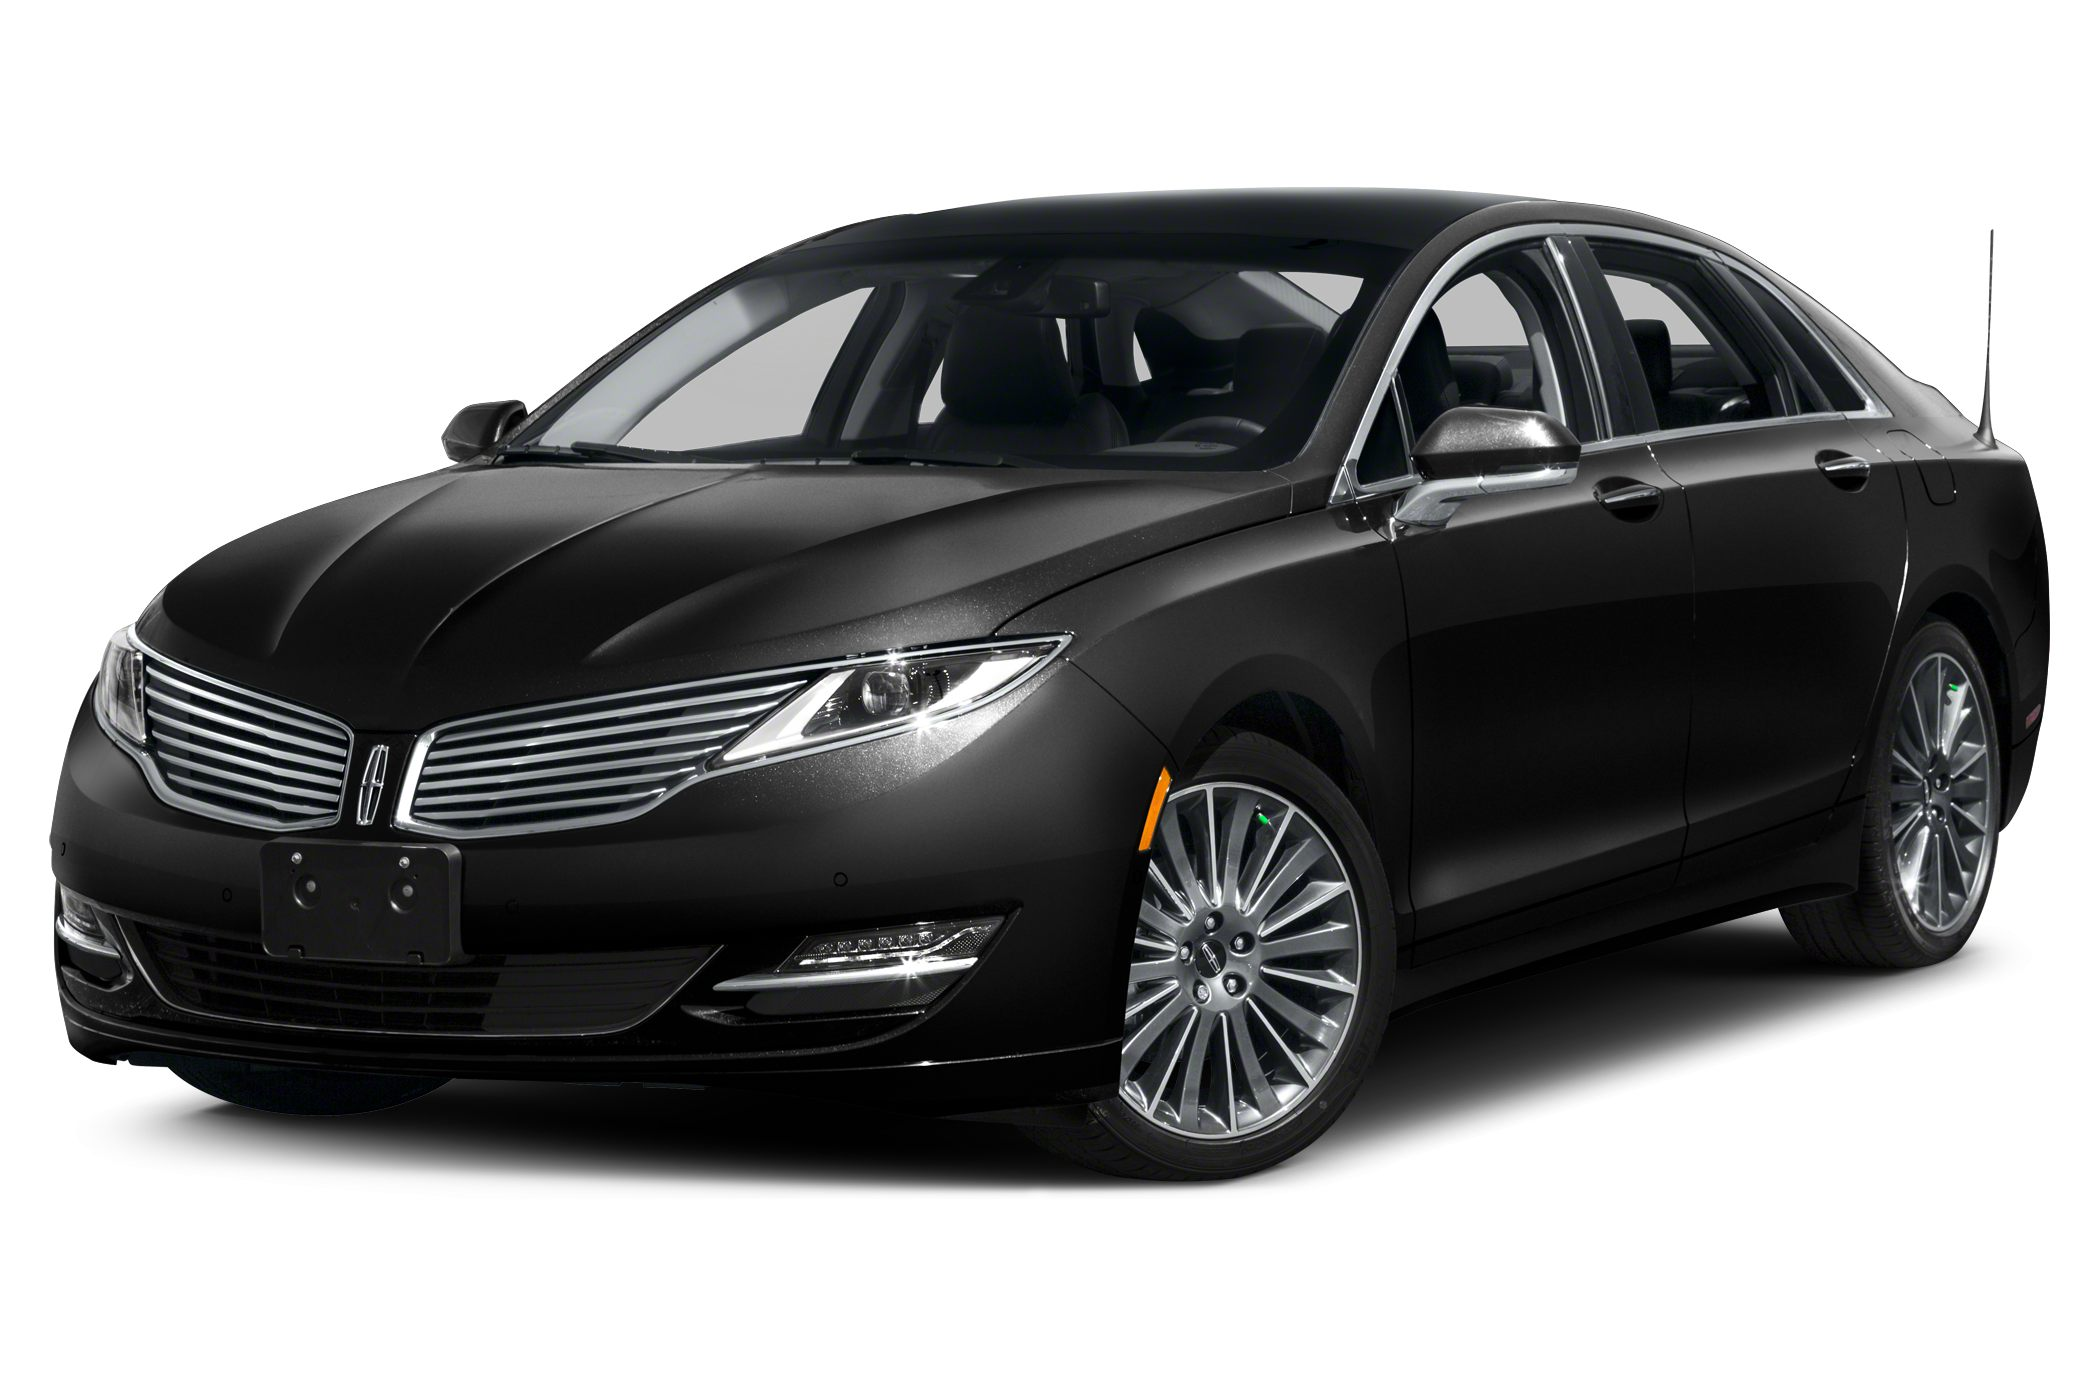 2013 Lincoln MKZ Hybrid Base Sedan for sale in Lansdale for $29,890 with 14,580 miles.